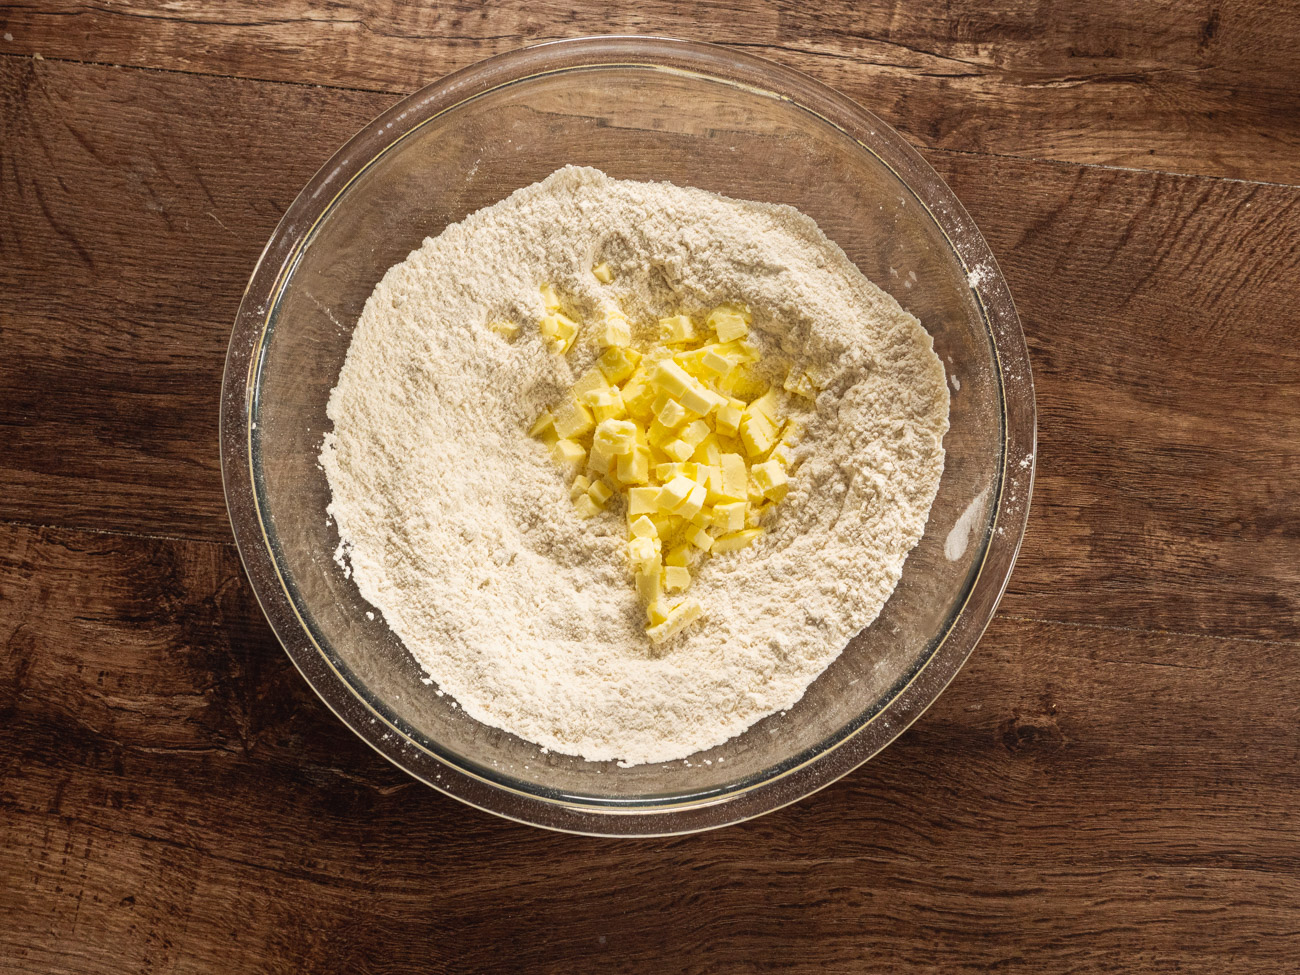 Mix together flour, brown sugar, baking powder, and salt in a large bowl. Once combined, cut in the butter with a fork or pastry cutter until the mixture resembles coarse crumbs.